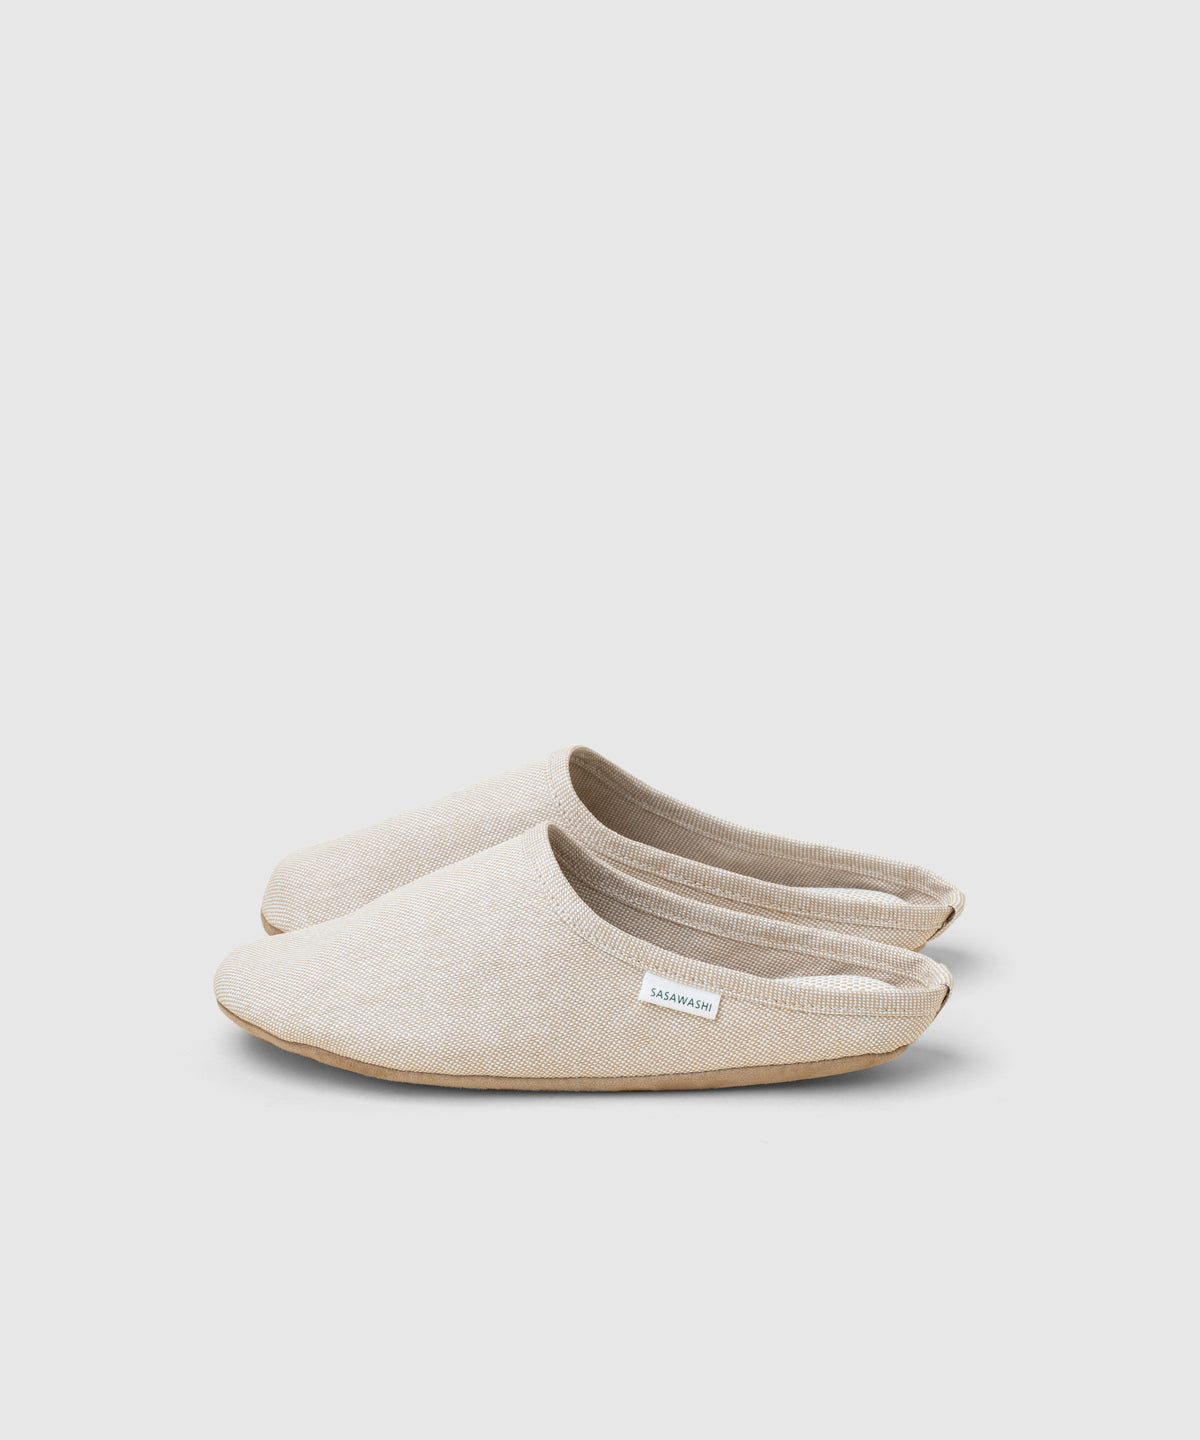 Sasawashi Slippers / Room Shoes